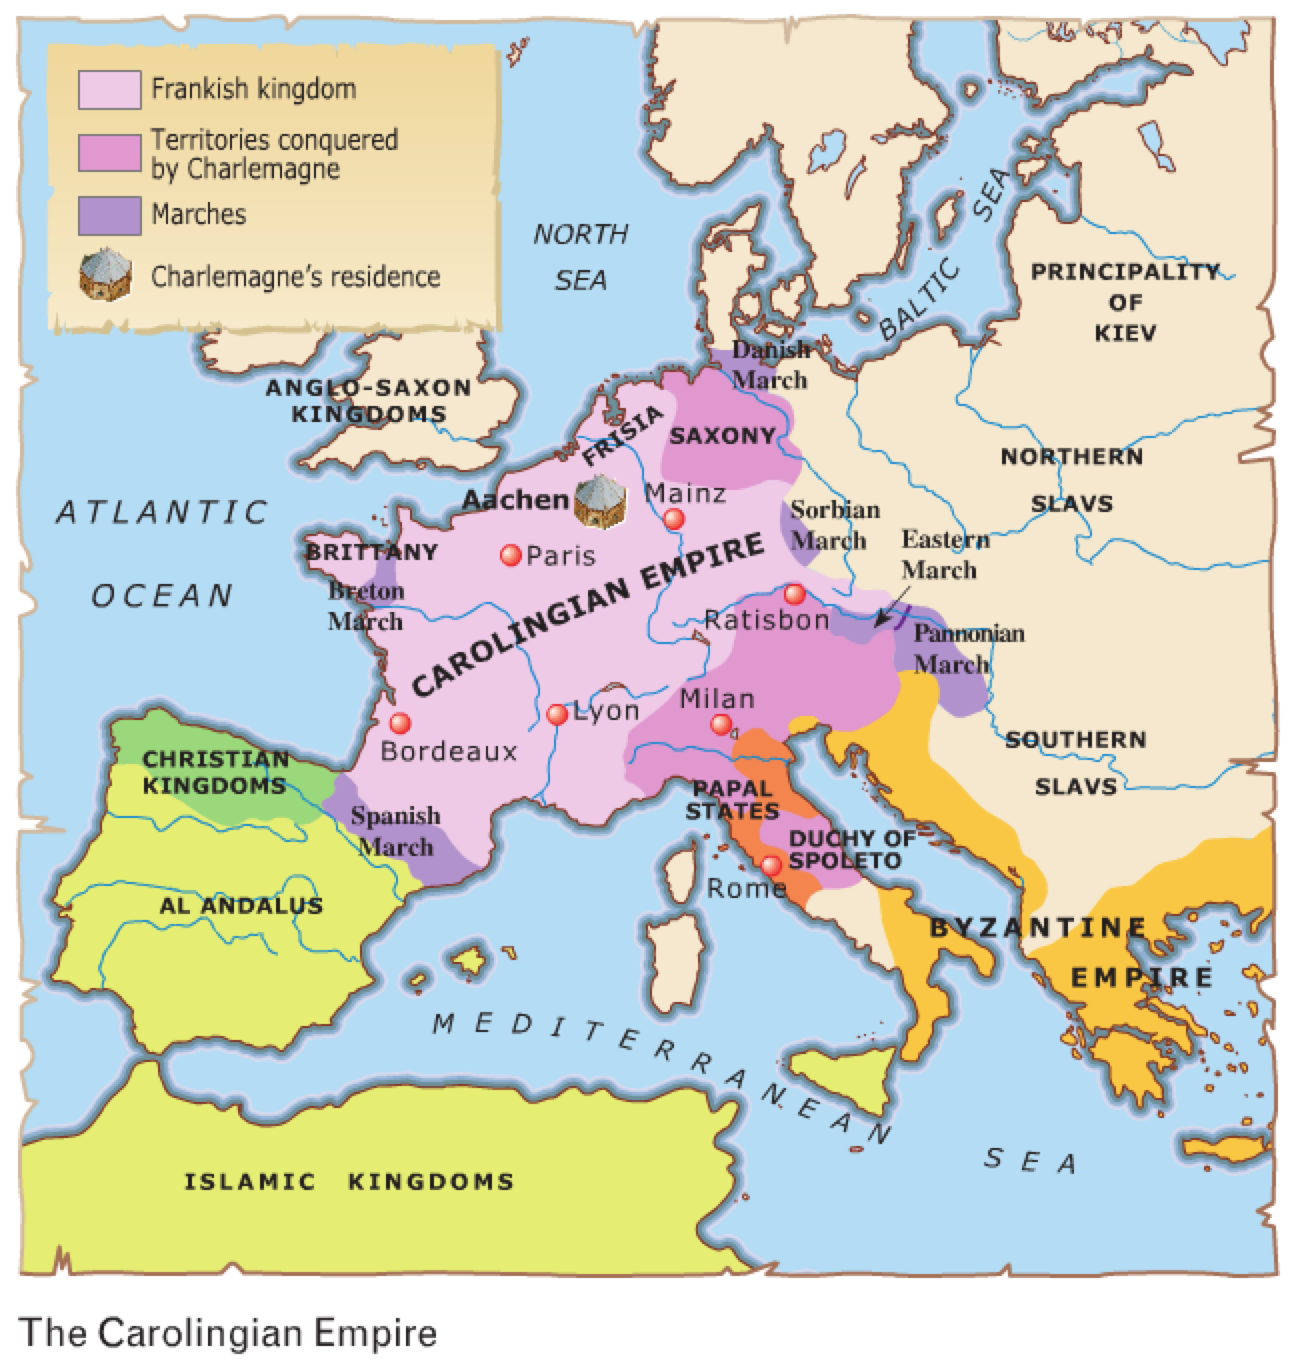 charlemagne son of pippin the short then conquered the lombards in italy and the saxons in germany these events made france a strong and secure kingdom